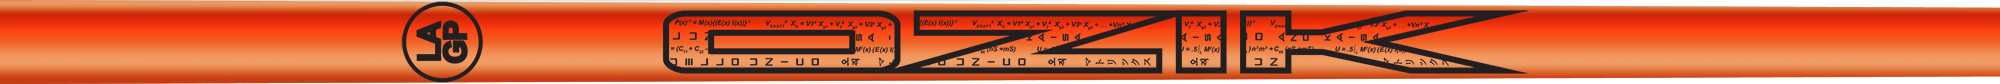 Ozik White Tie: Neon Orange Black Gloss - Wood 40 R